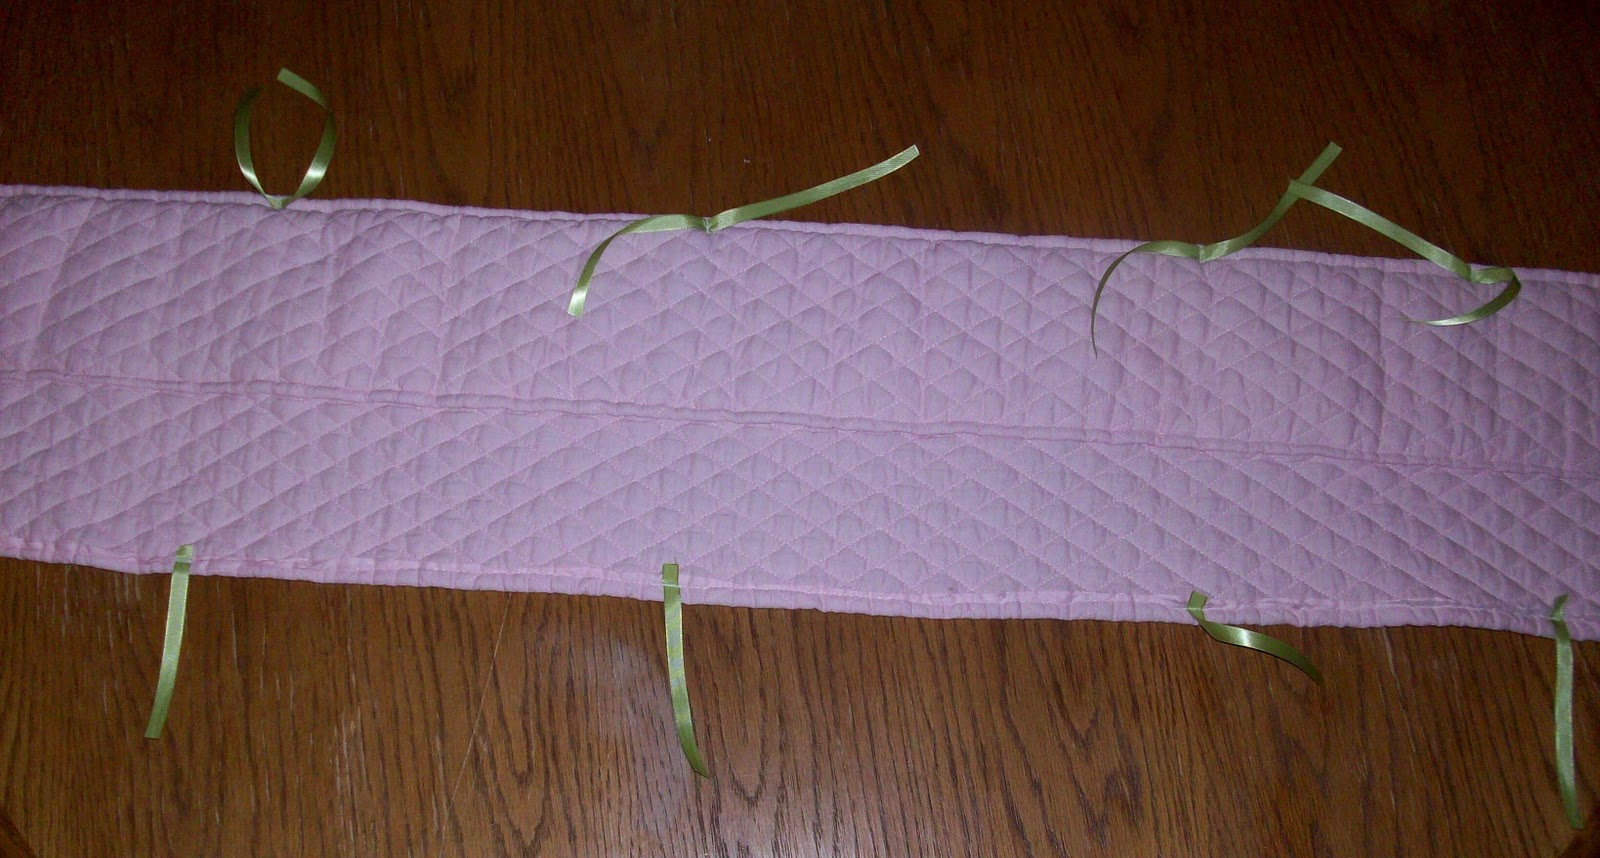 how to make a crib rail cover without sewing